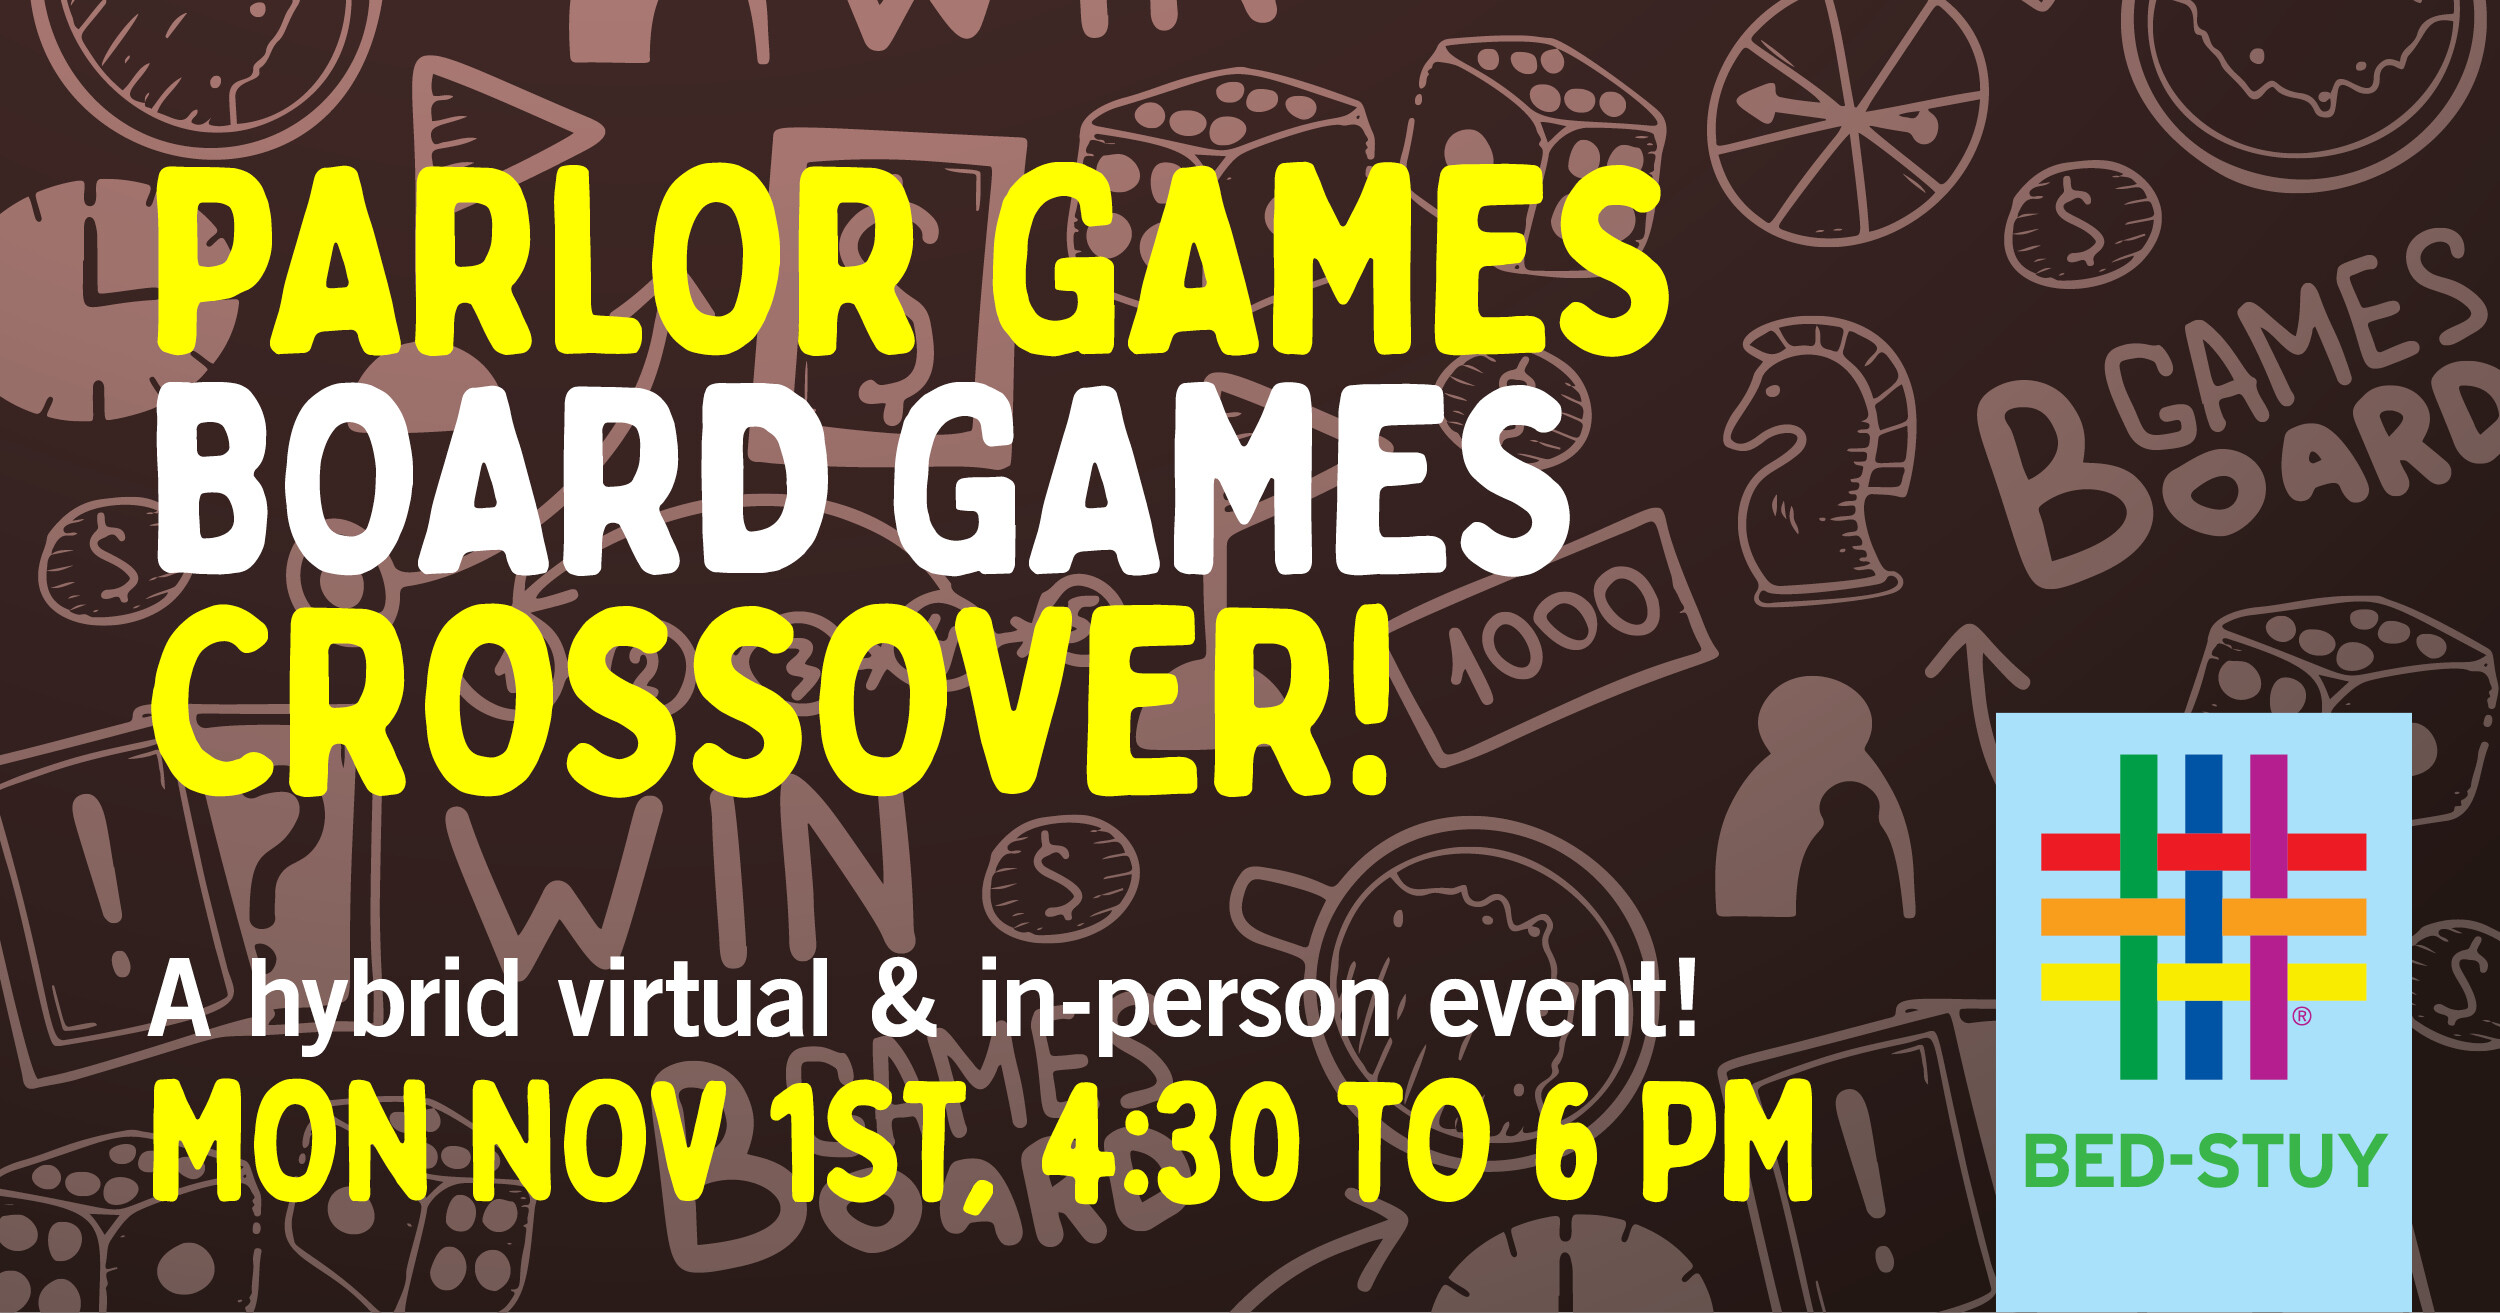 Parlor Games/Board Games Crossover event at Brooklyn Community Pride Center